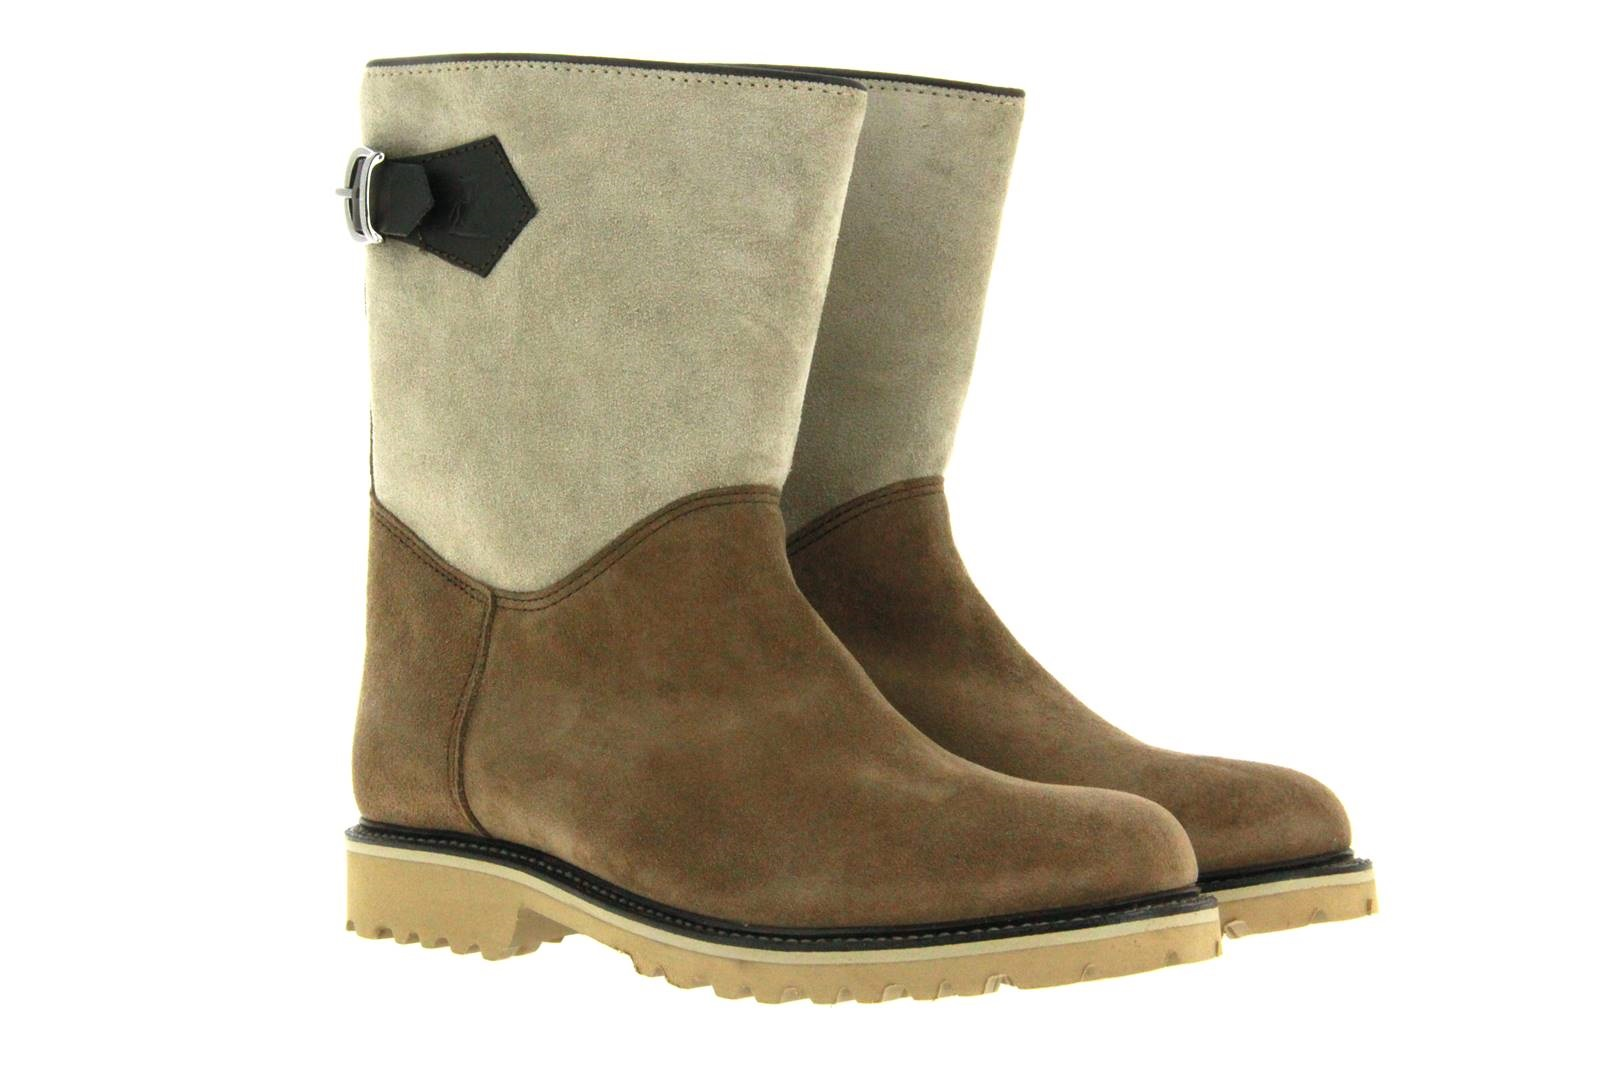 Ludwig Reiter boots lined SENNERIN VELOUR TABAC RIND QUARZ RIND